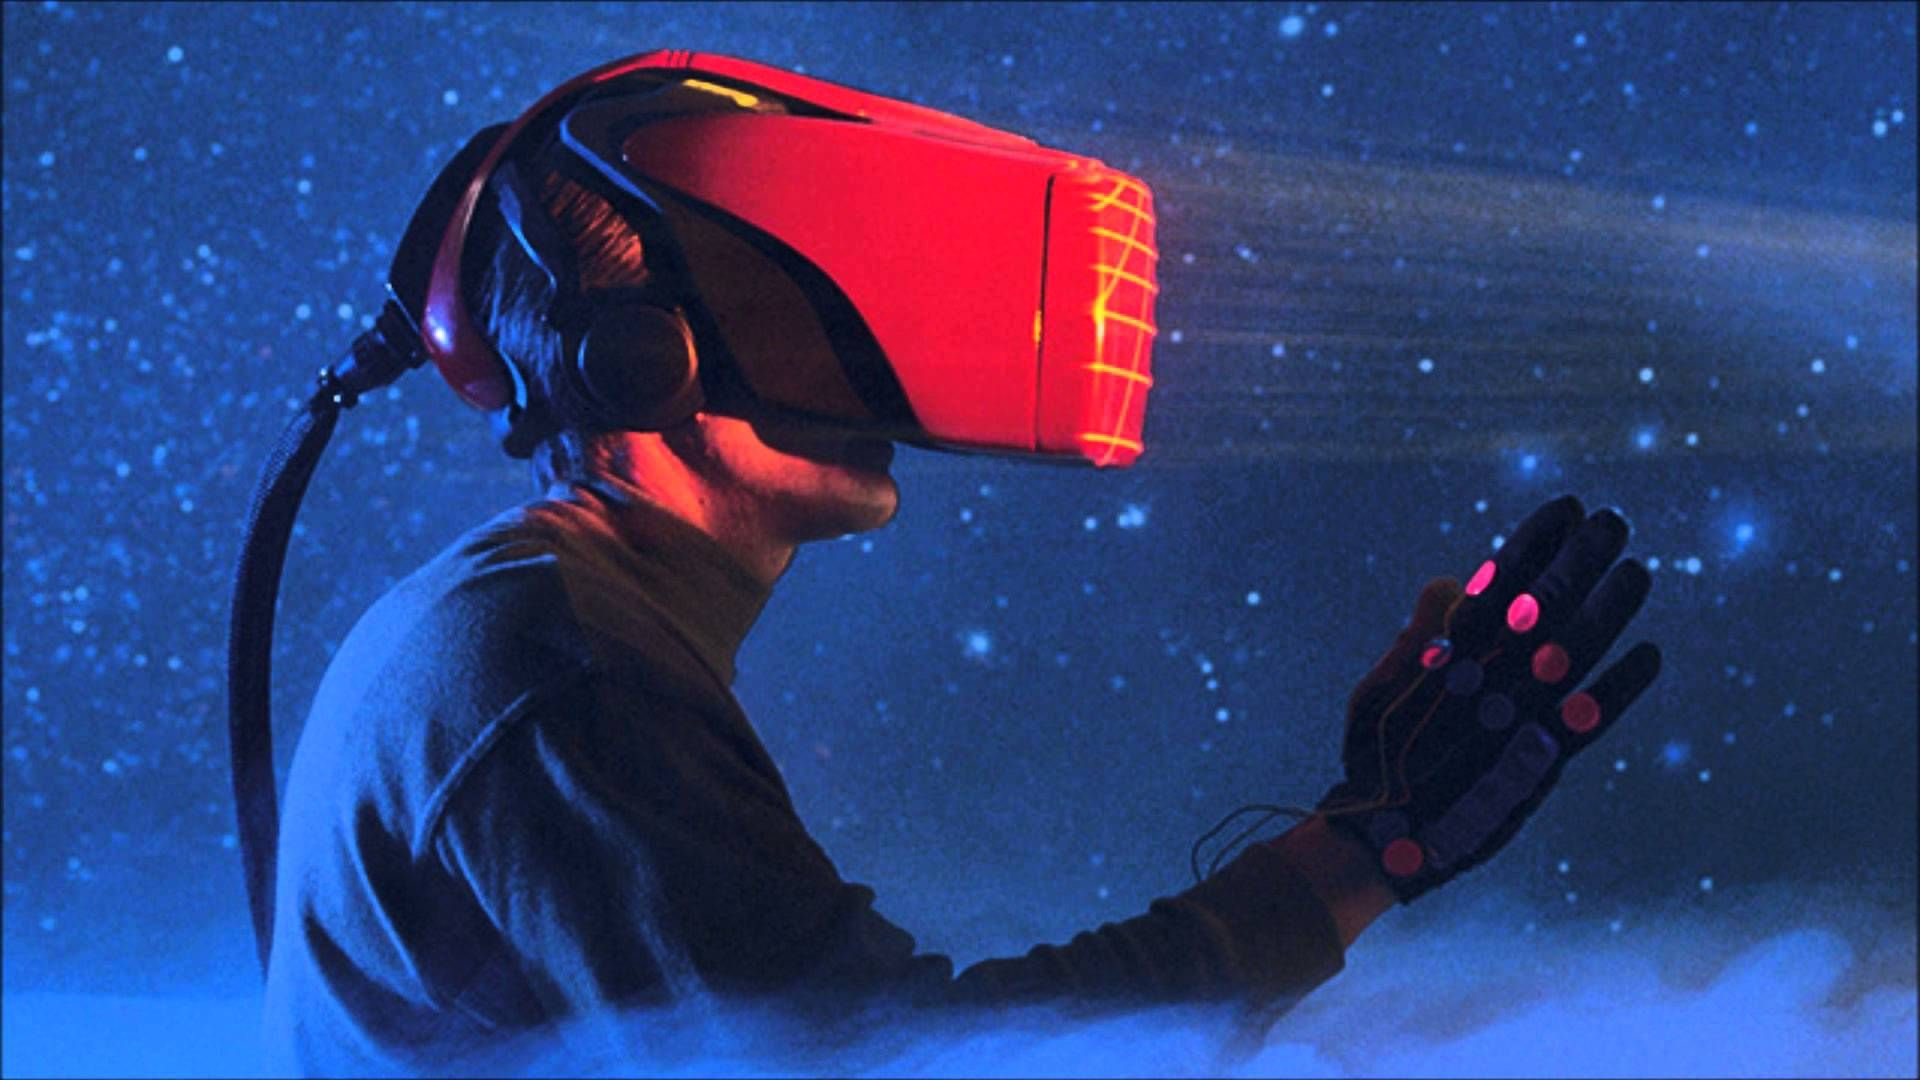 virtual reality wallpaper   Buscar con Google Gaming Gadgets 1920x1080